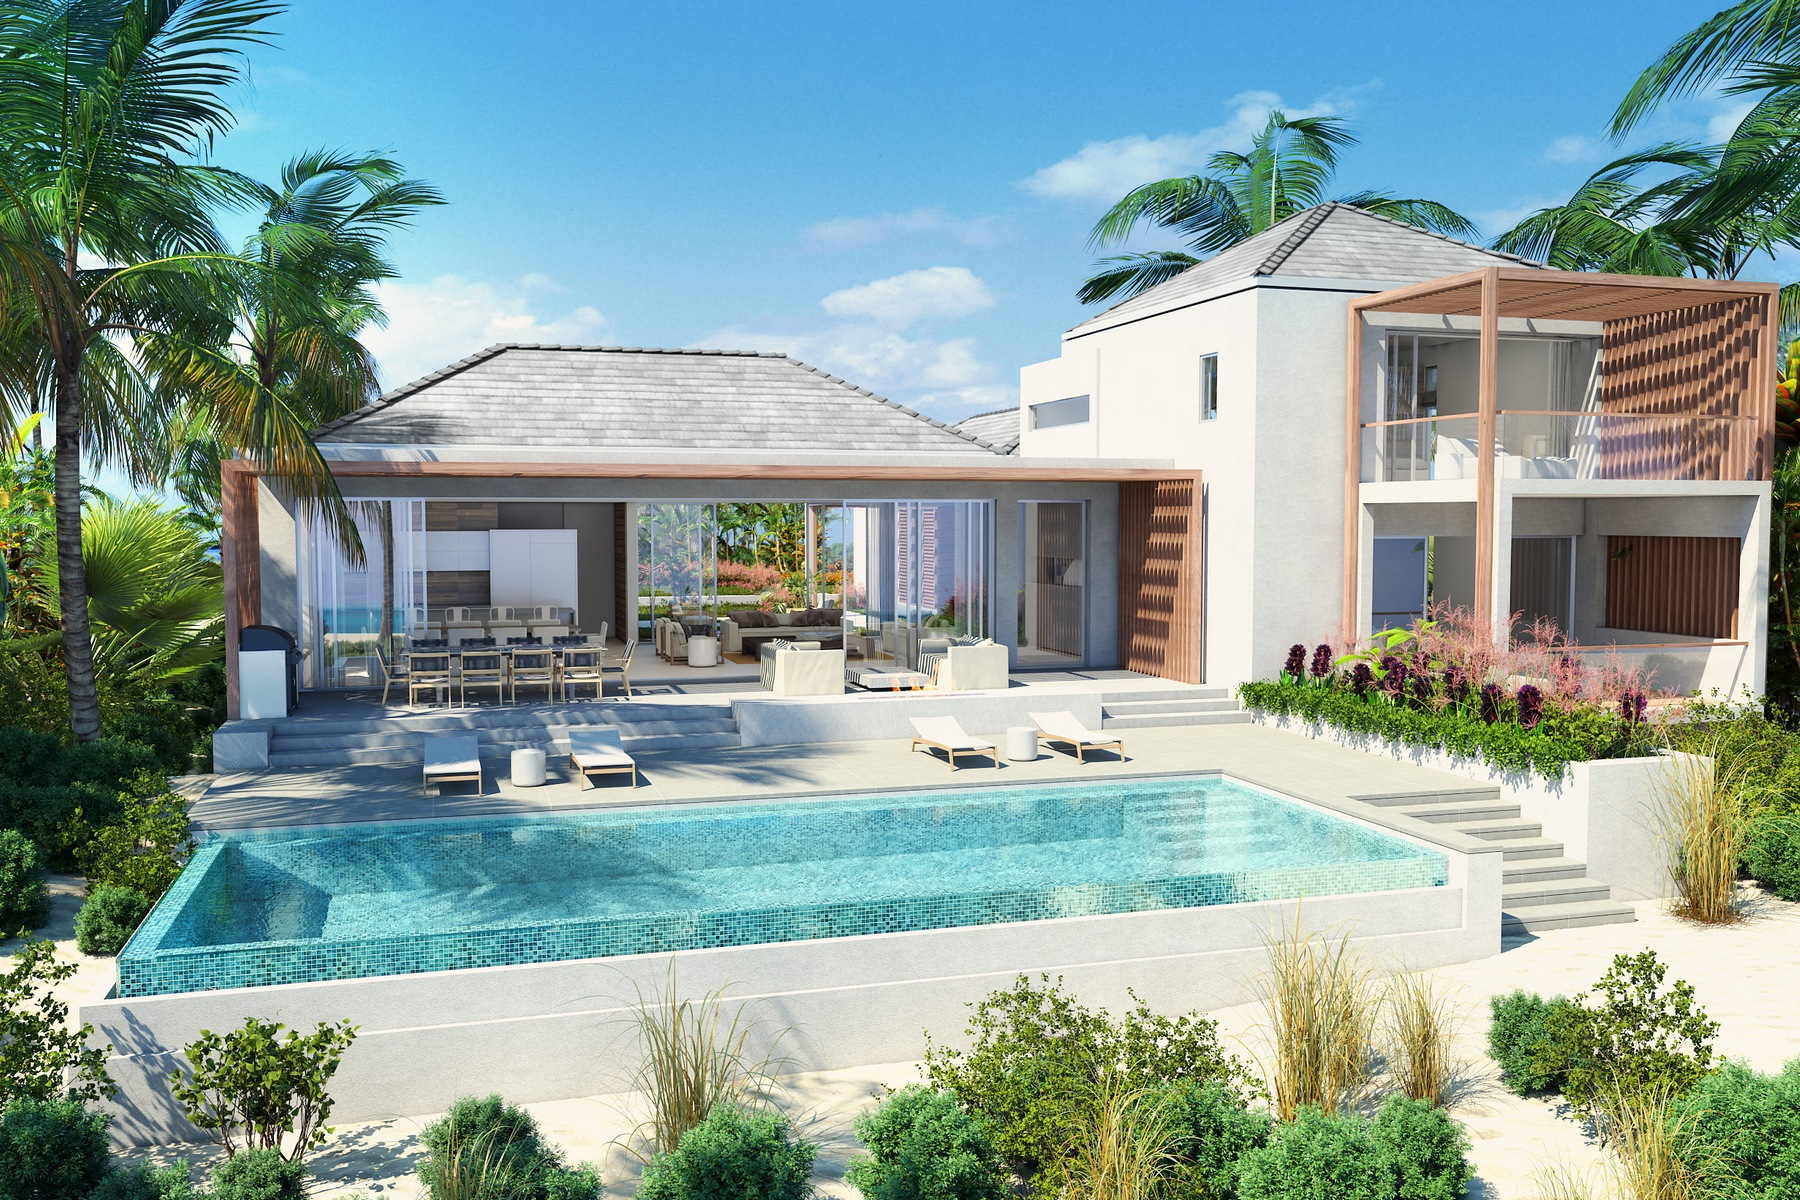 Villa per Vendita alle ore BEACH ENCLAVE LONG BAY - Design One 4B Beachfront Long Bay, Providenciales, TCI Turks E Caicos